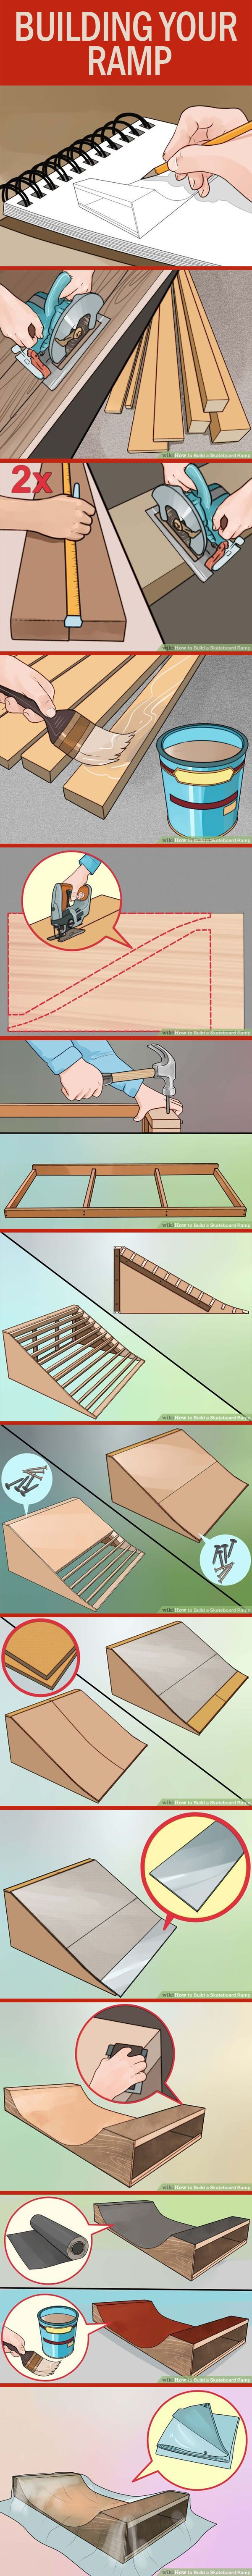 How to build a skateboard ramp DIY. Wikihow.com